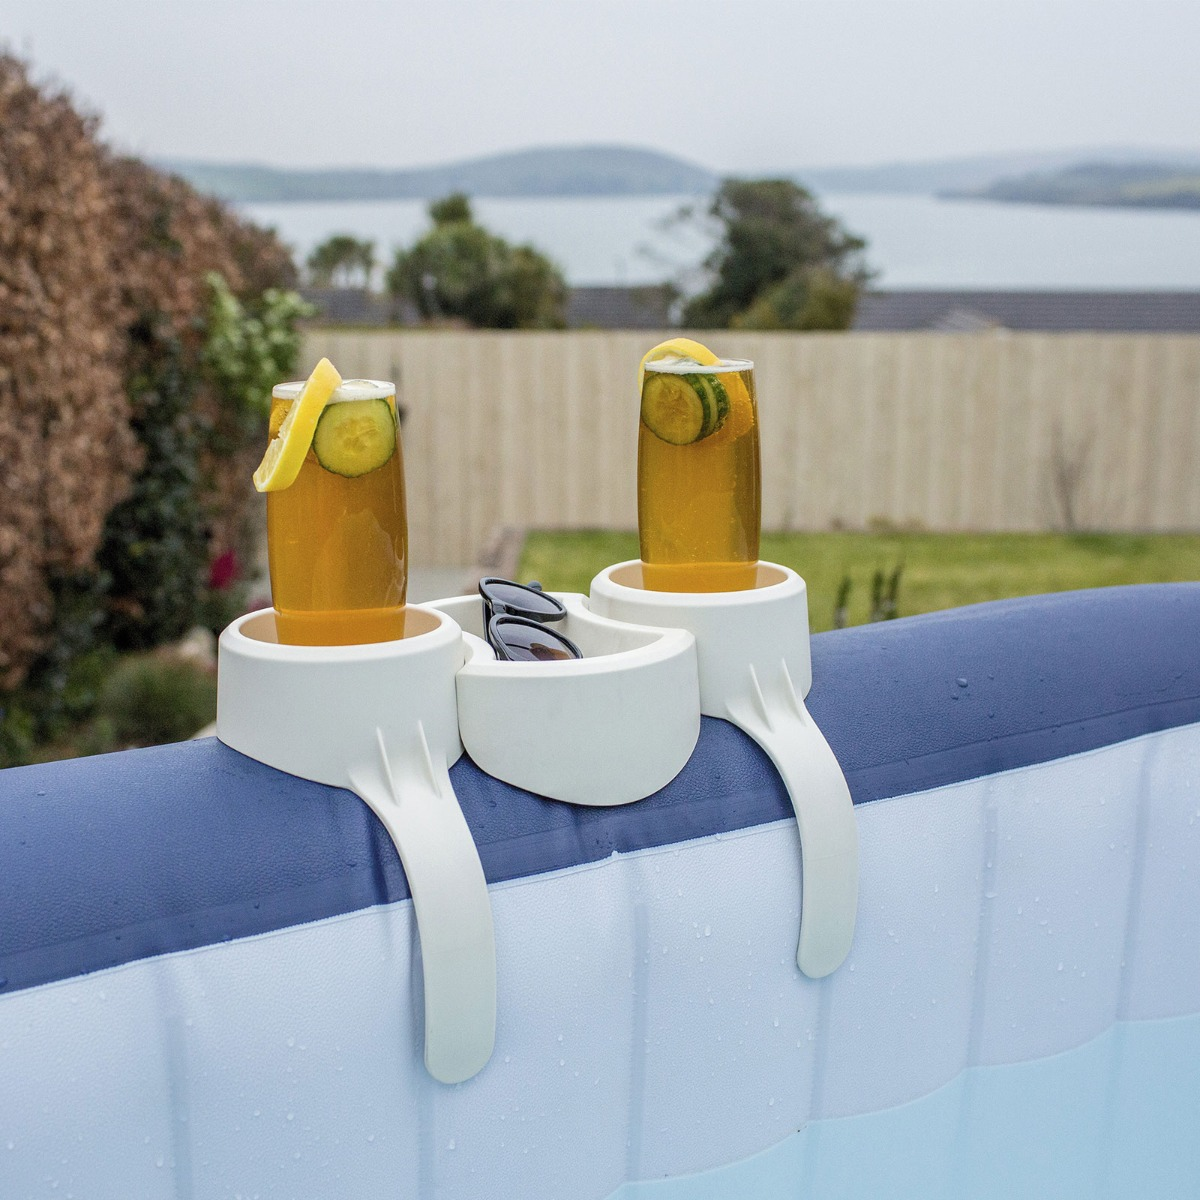 Bestway Lay-Z-Spa Accessories Hot Tub Drink 2 X Cup Snack Tray Holder Stand